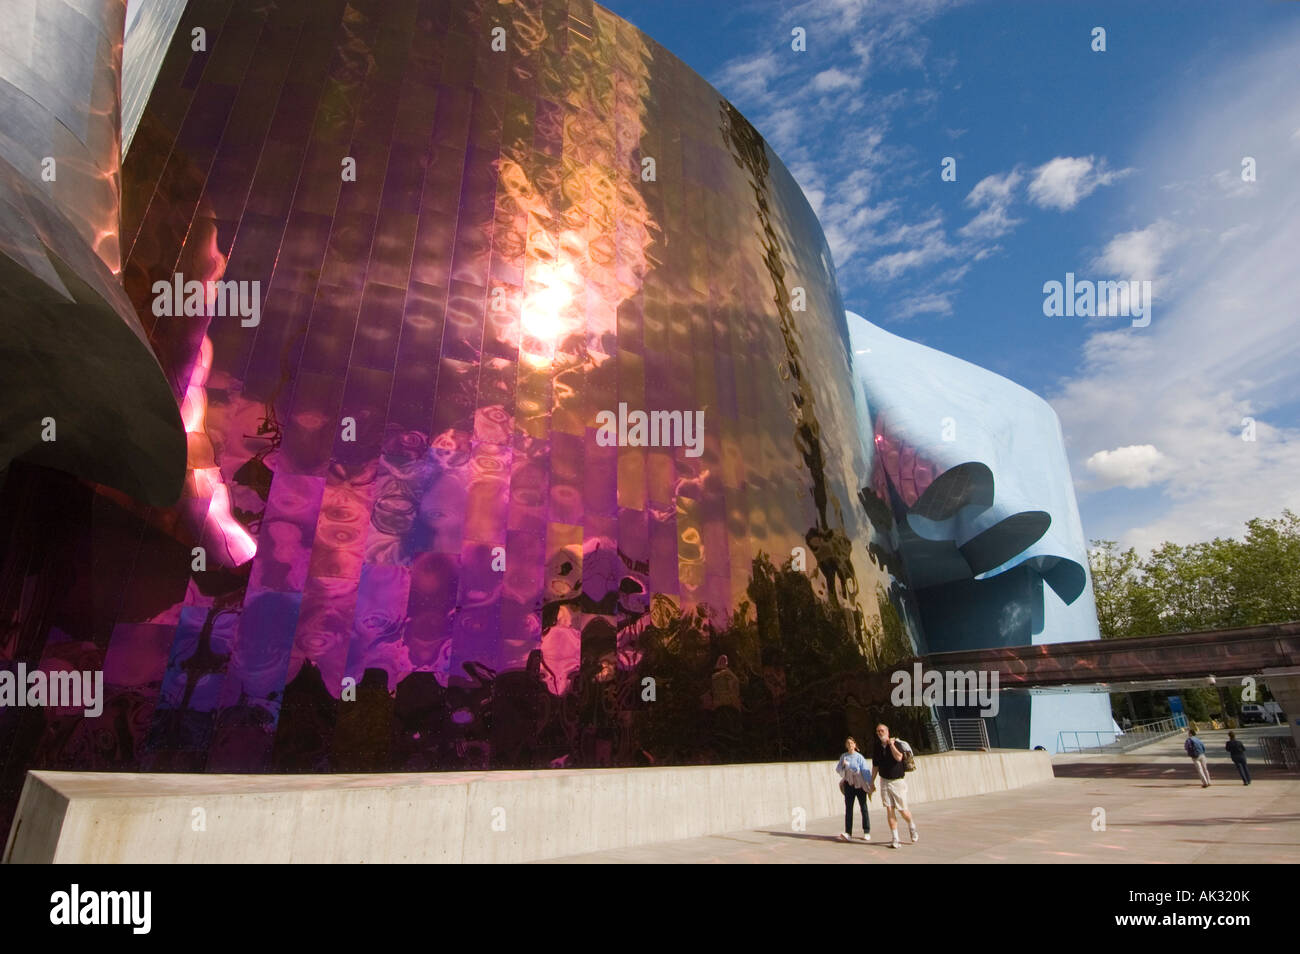 Partial Exterior View Of The Experience Music Project Science Fiction Museum  And Hall Of Fame